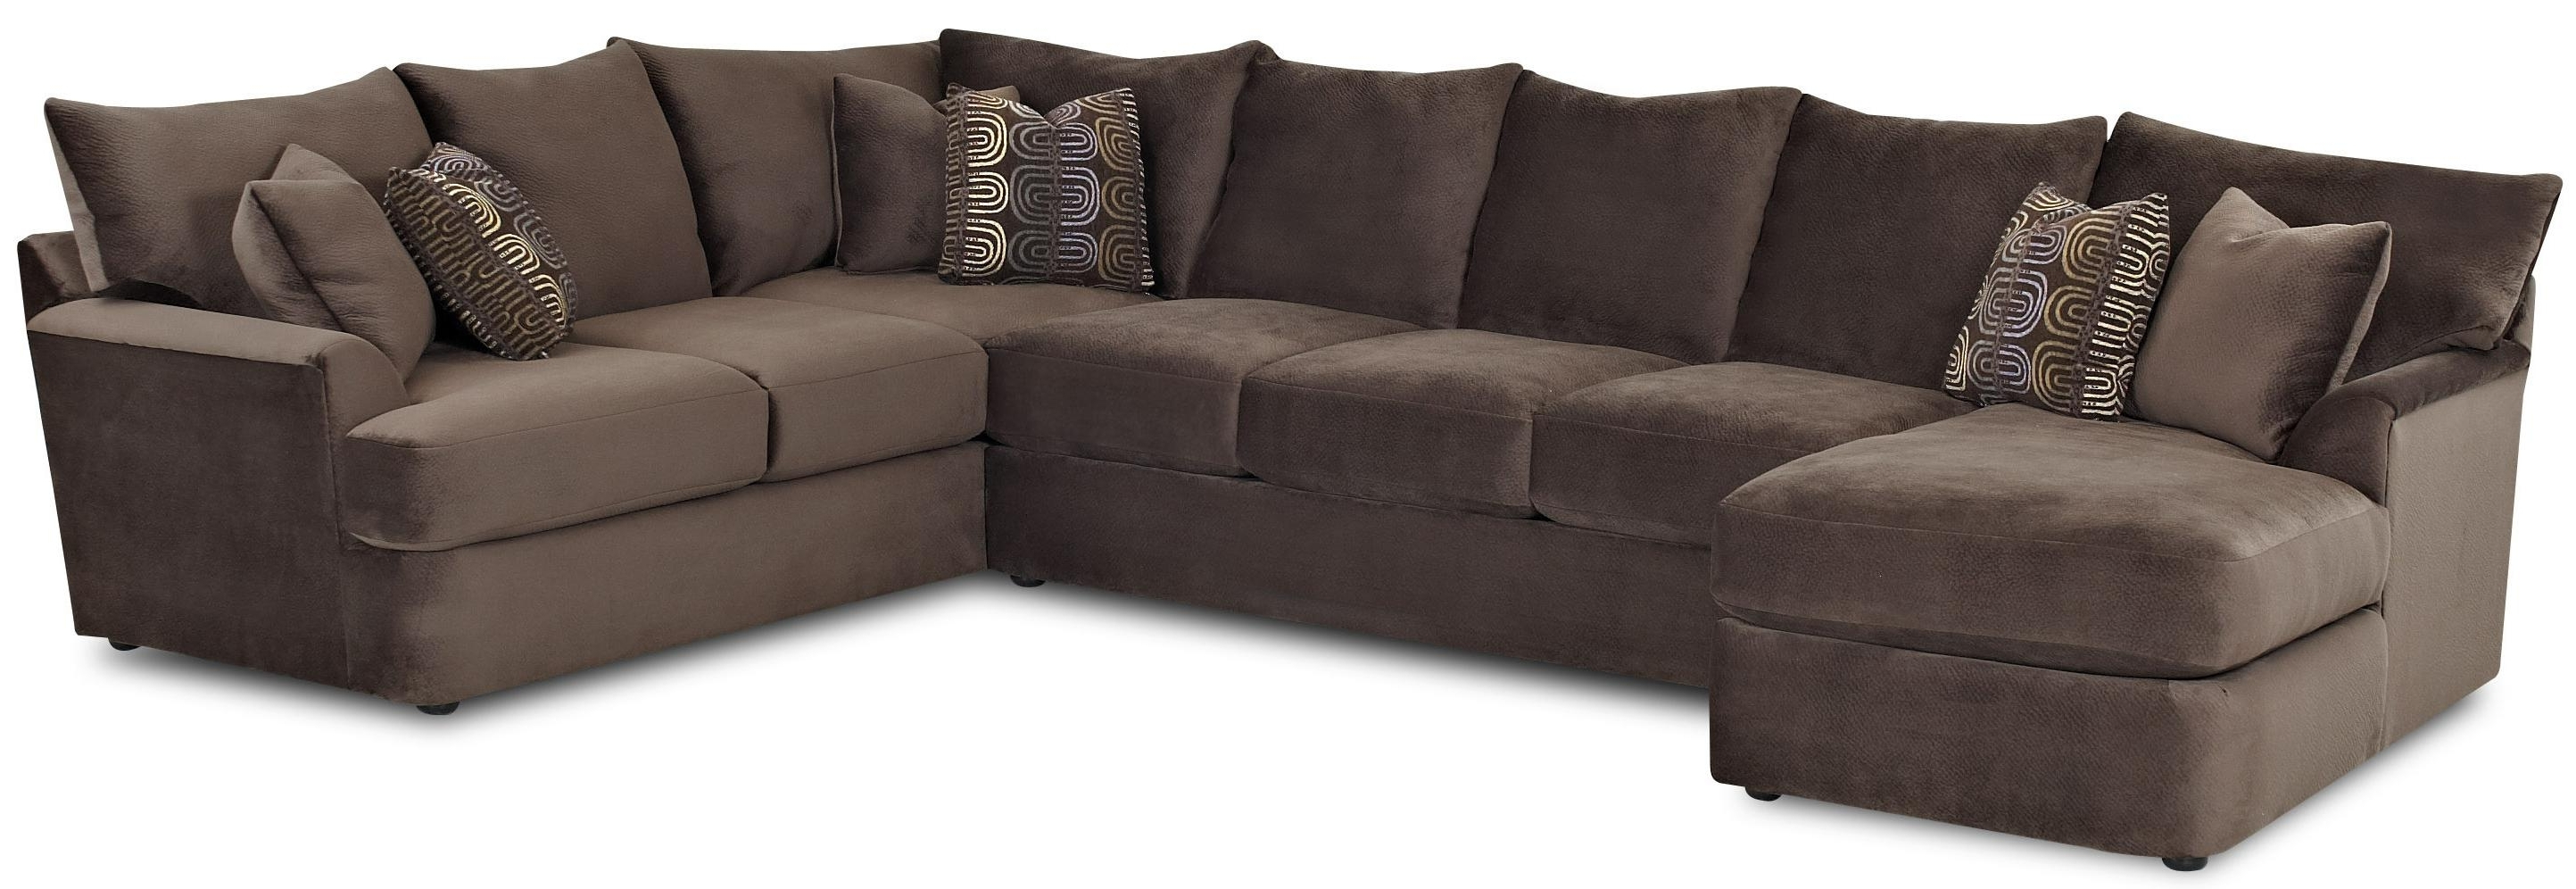 Well Known Sectional Sofa Design: Best Seller L Shaped Sectional Sofas For Throughout Leather L Shaped Sectional Sofas (View 15 of 15)